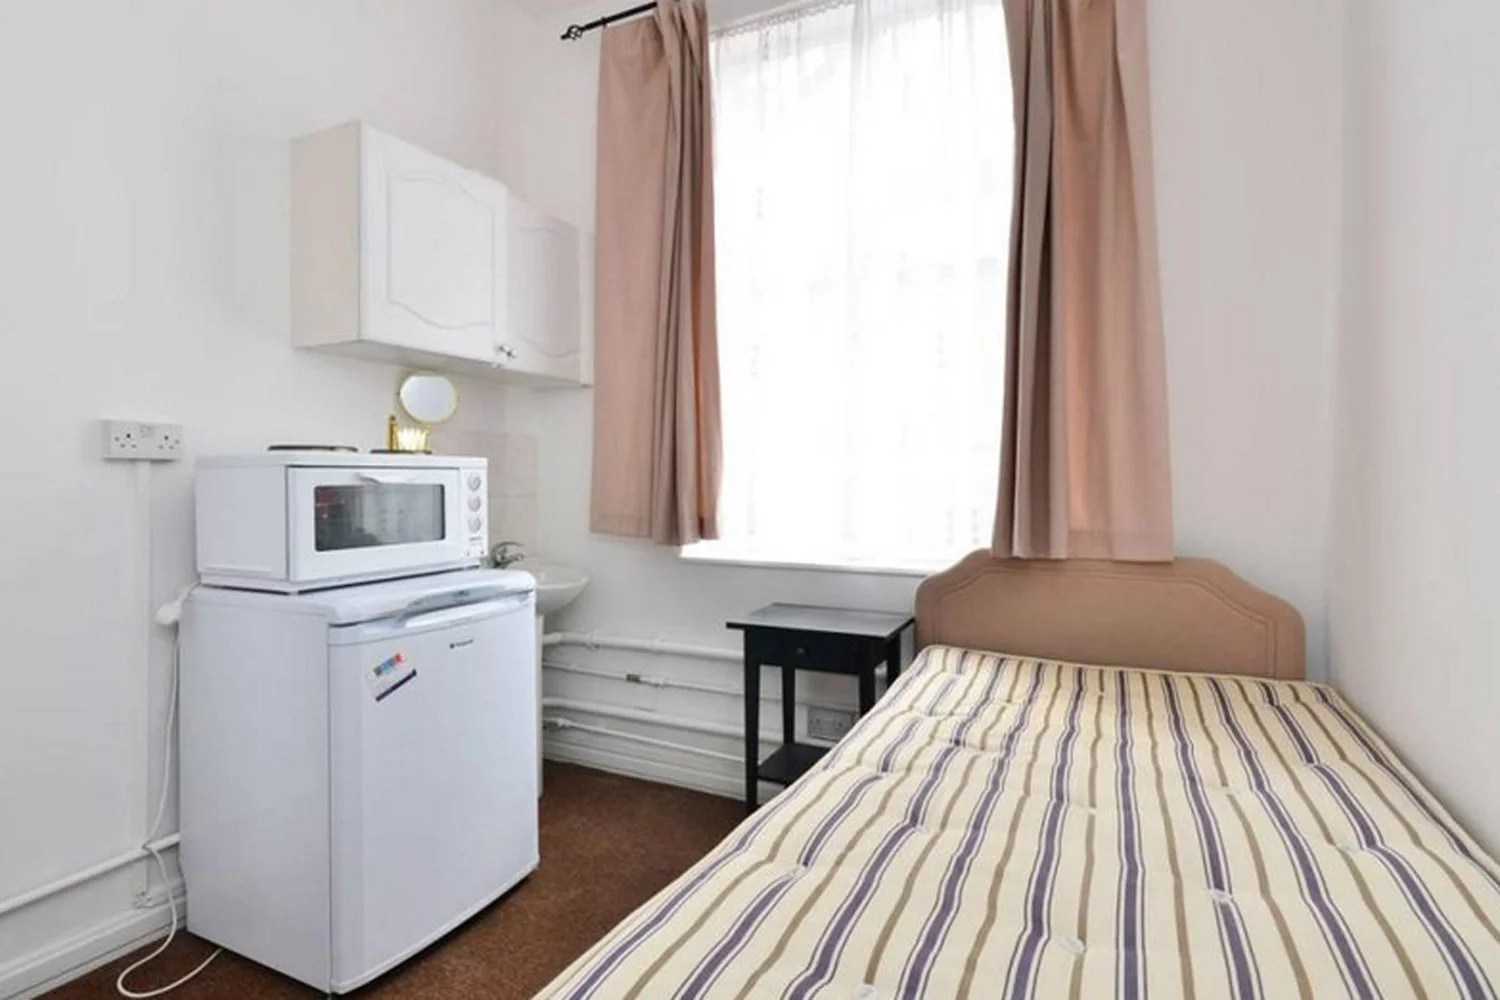 Tiny flat in exclusive London postcode is small enough to